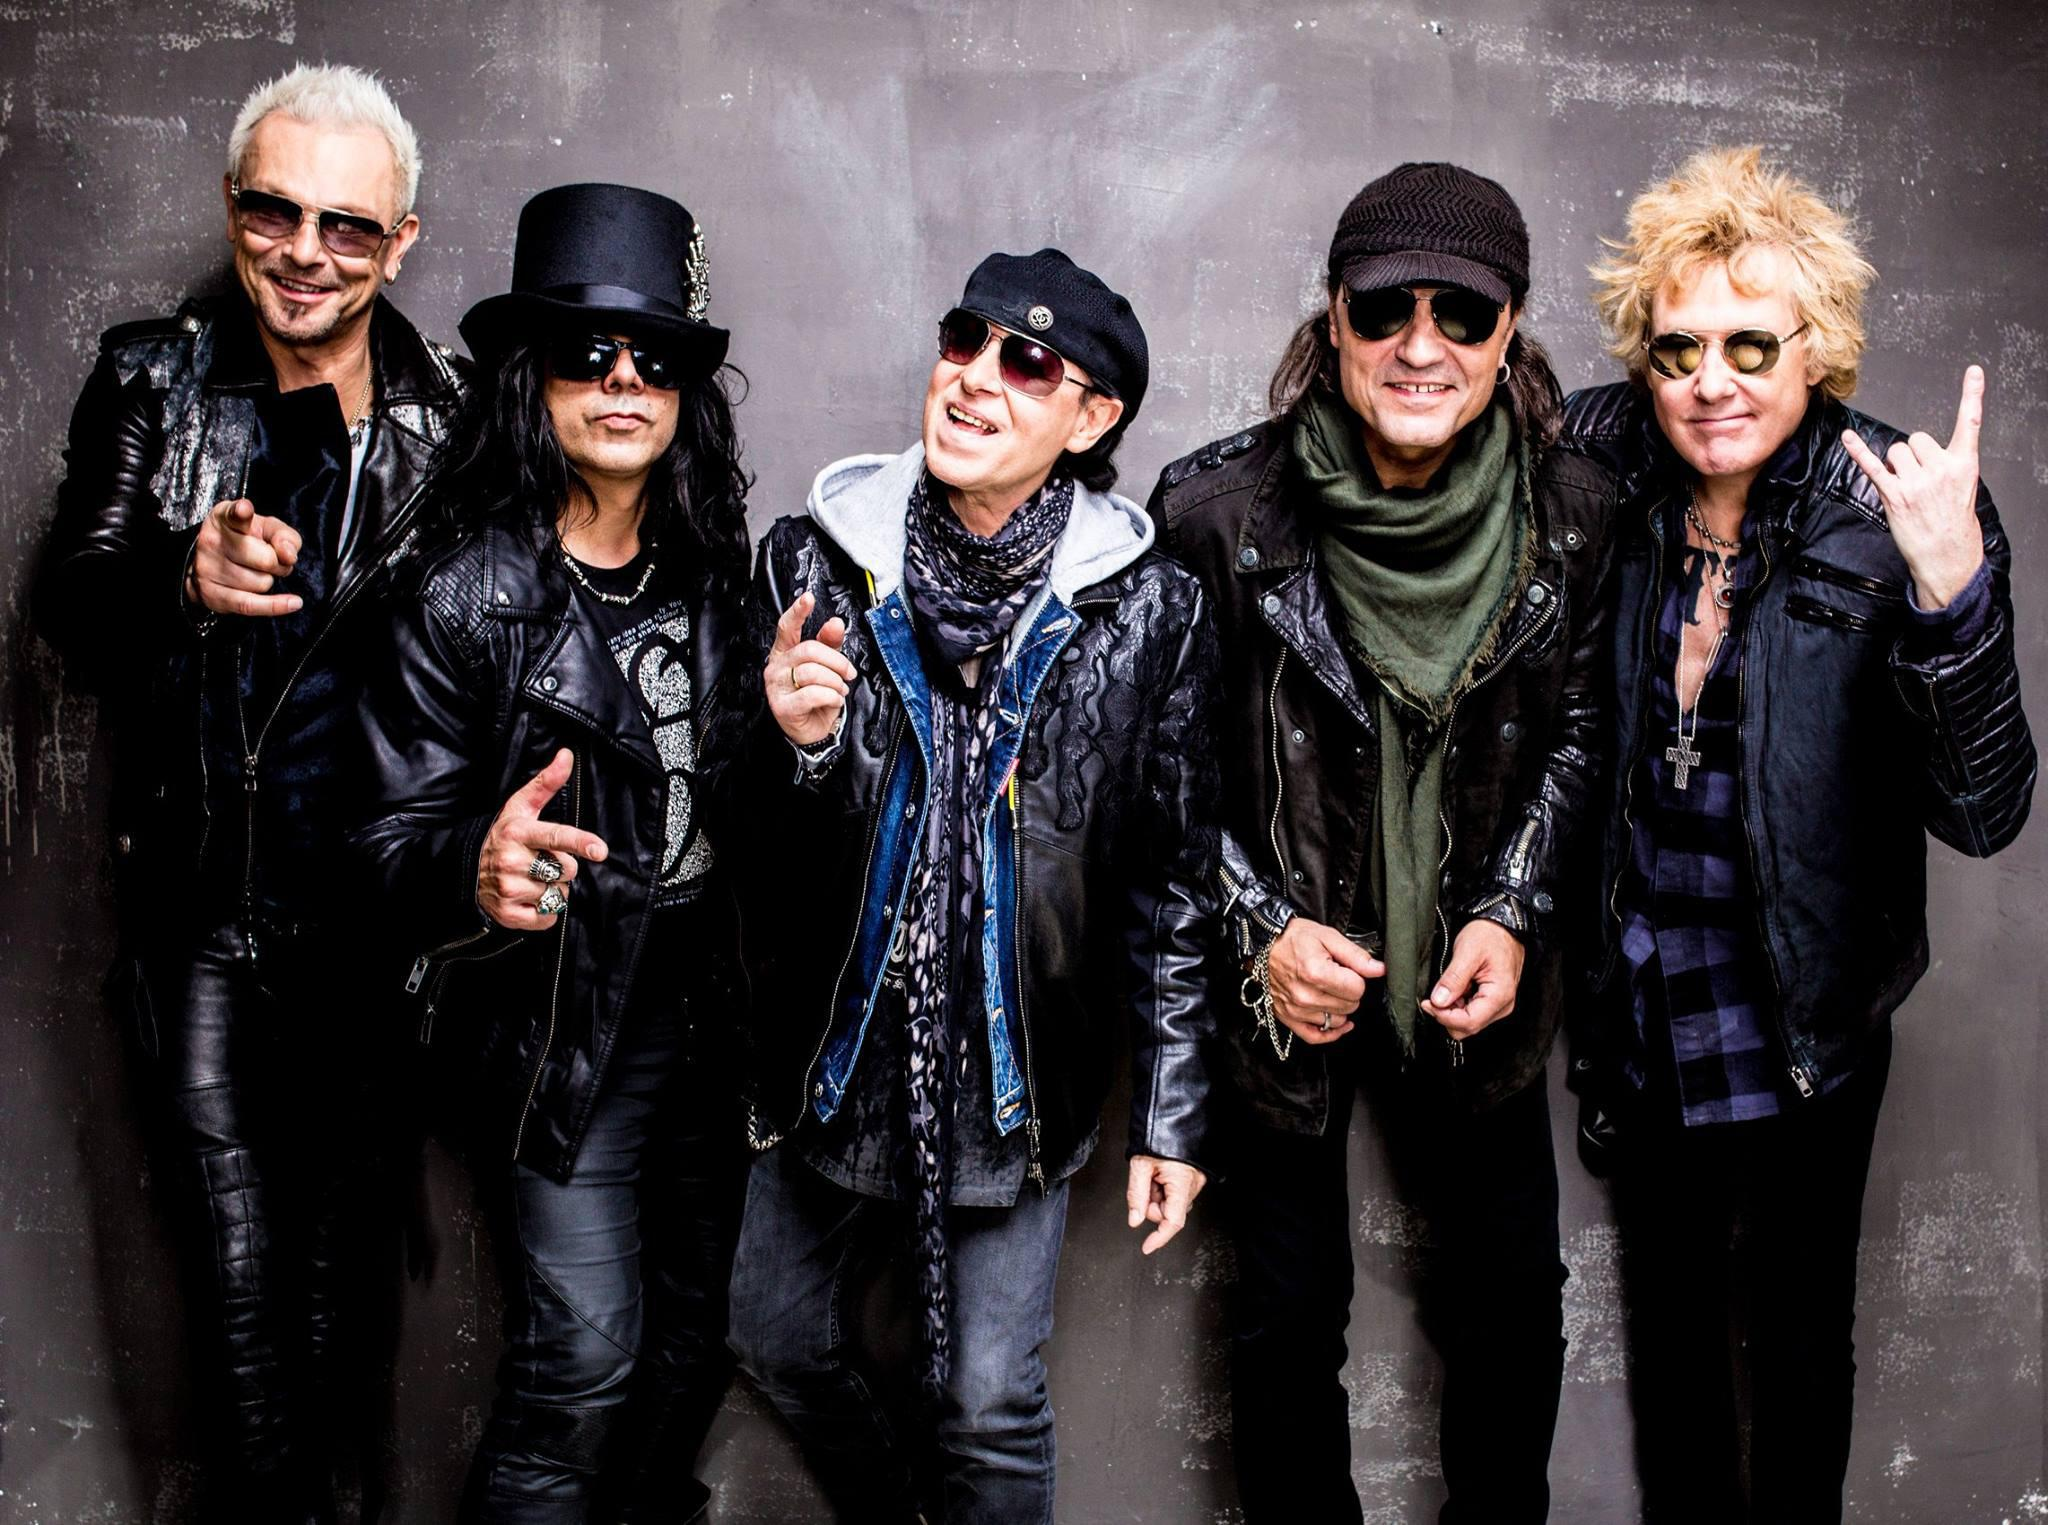 The animals band logo scorpions band logo - Scorpions 37 Things You Didn T Know About The Band List Useless Daily The Amazing Facts News Trivia Free Newsletter